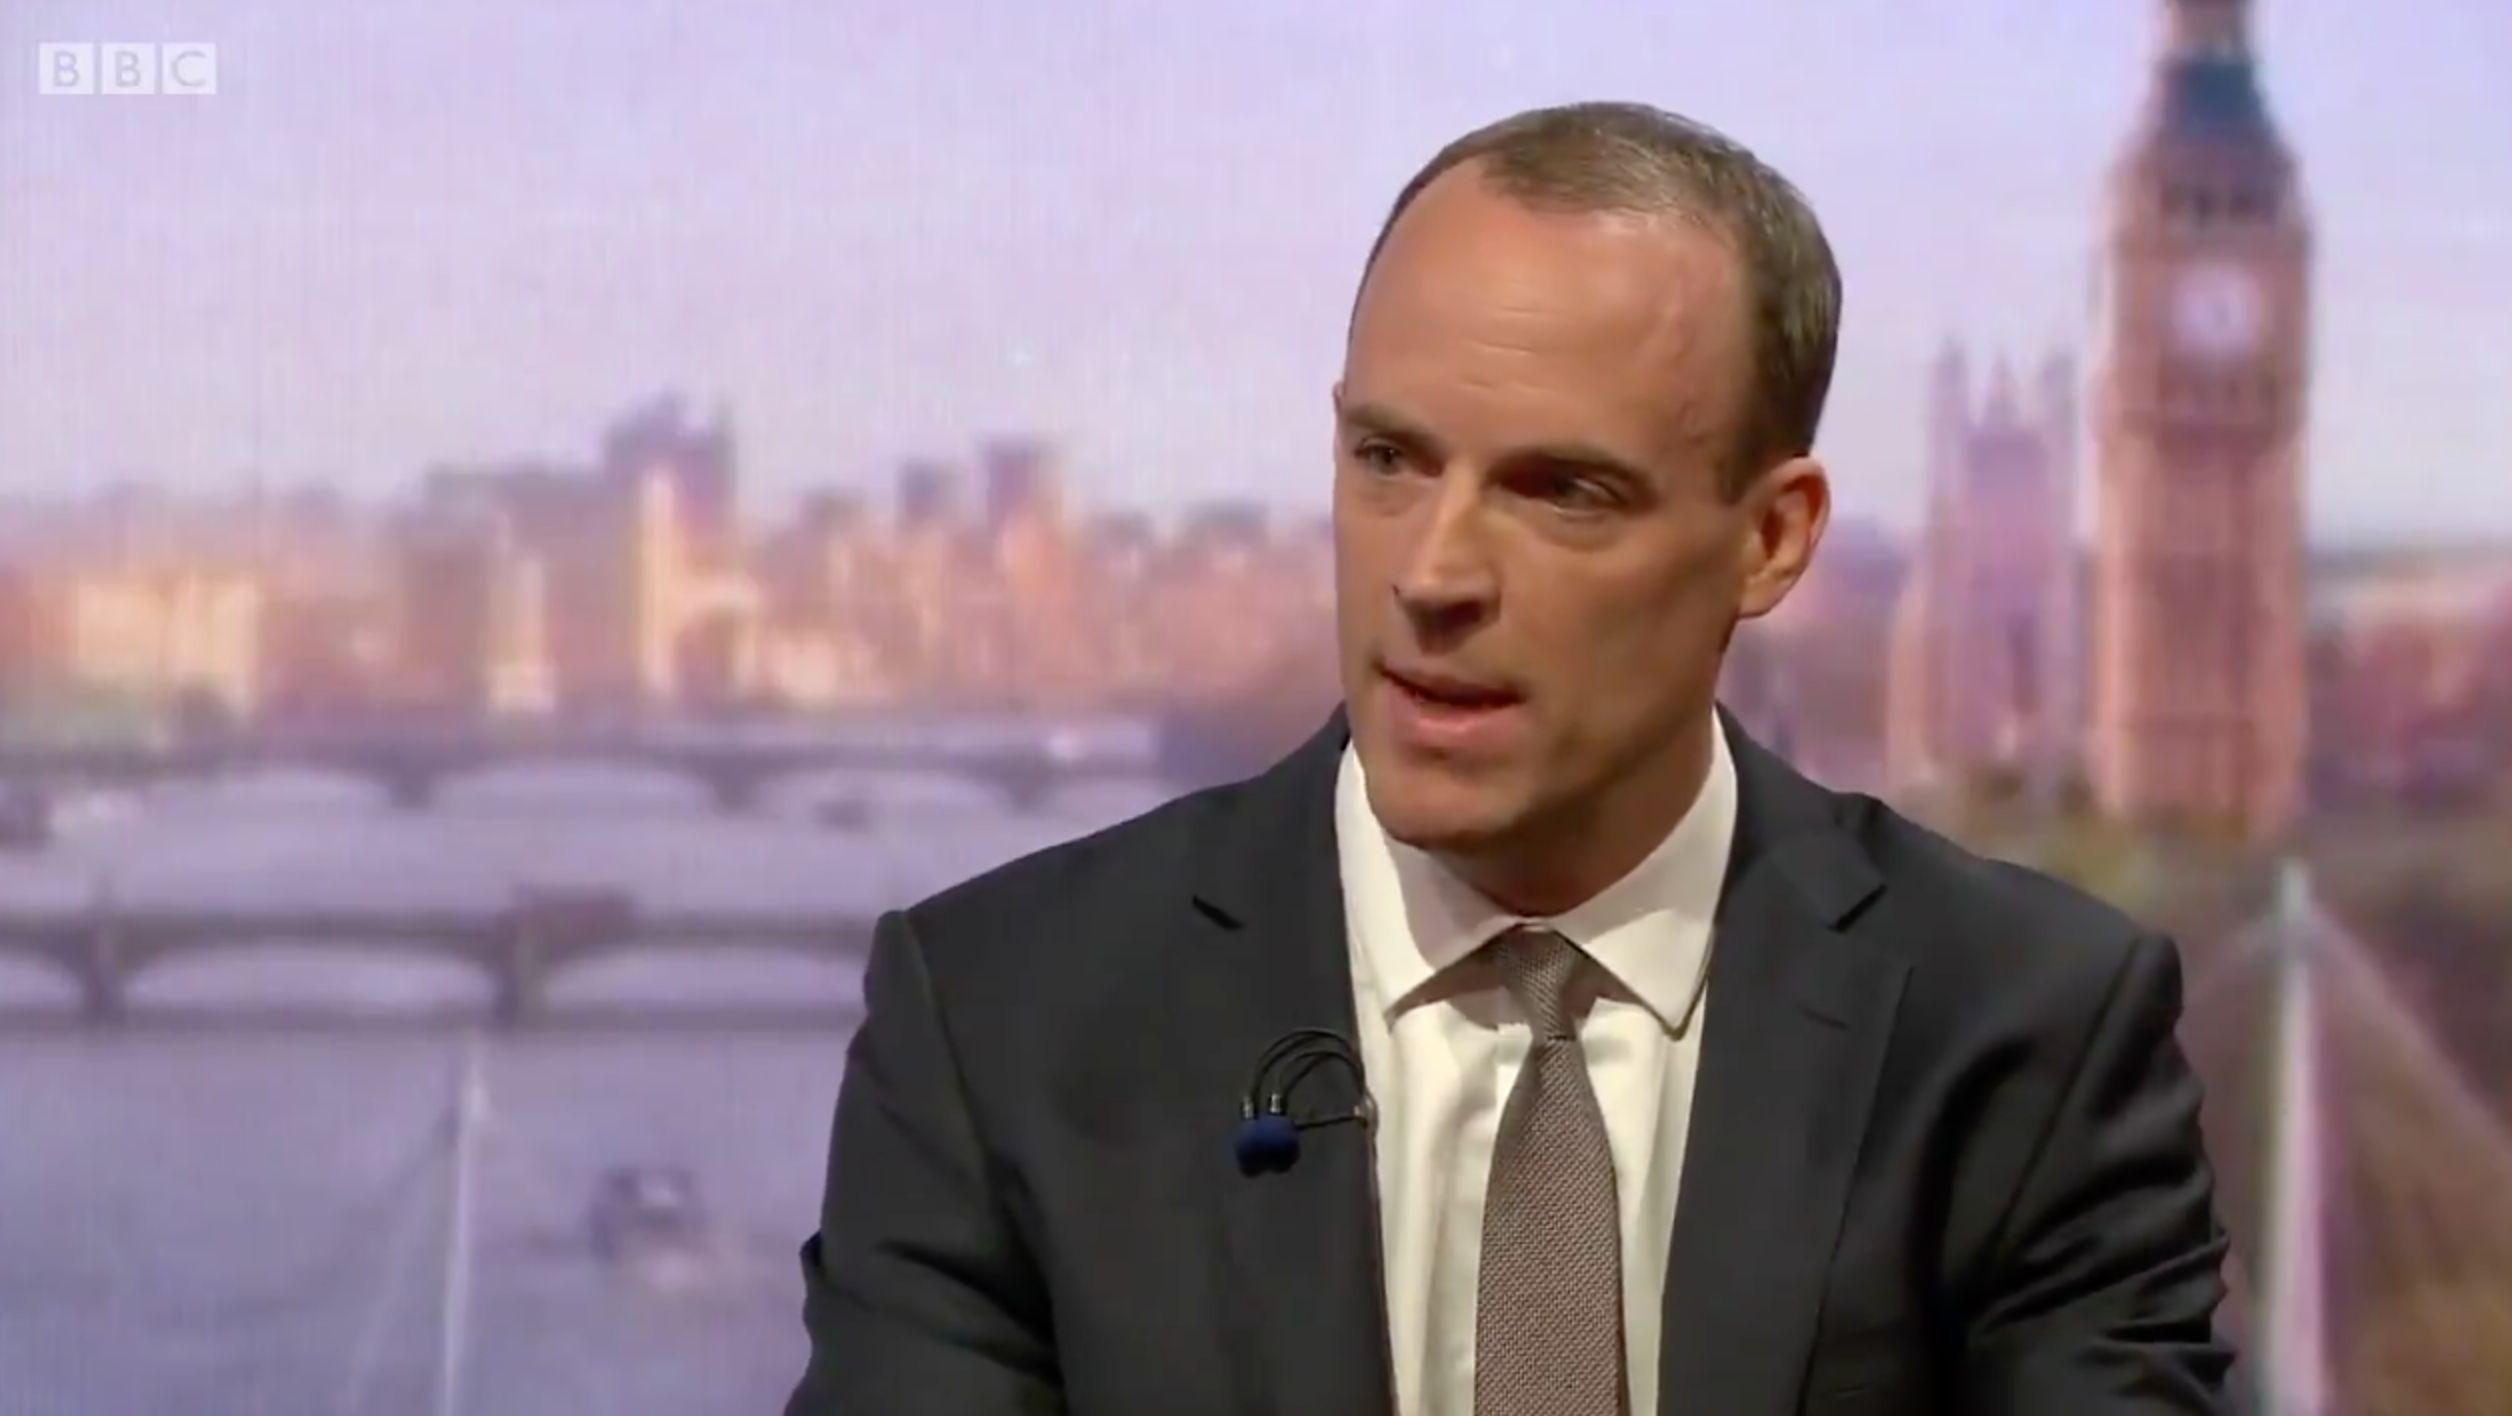 Brexit Secretary Dominic Raab Refuses To Deny UK Stockpiling Food In Case of 'No